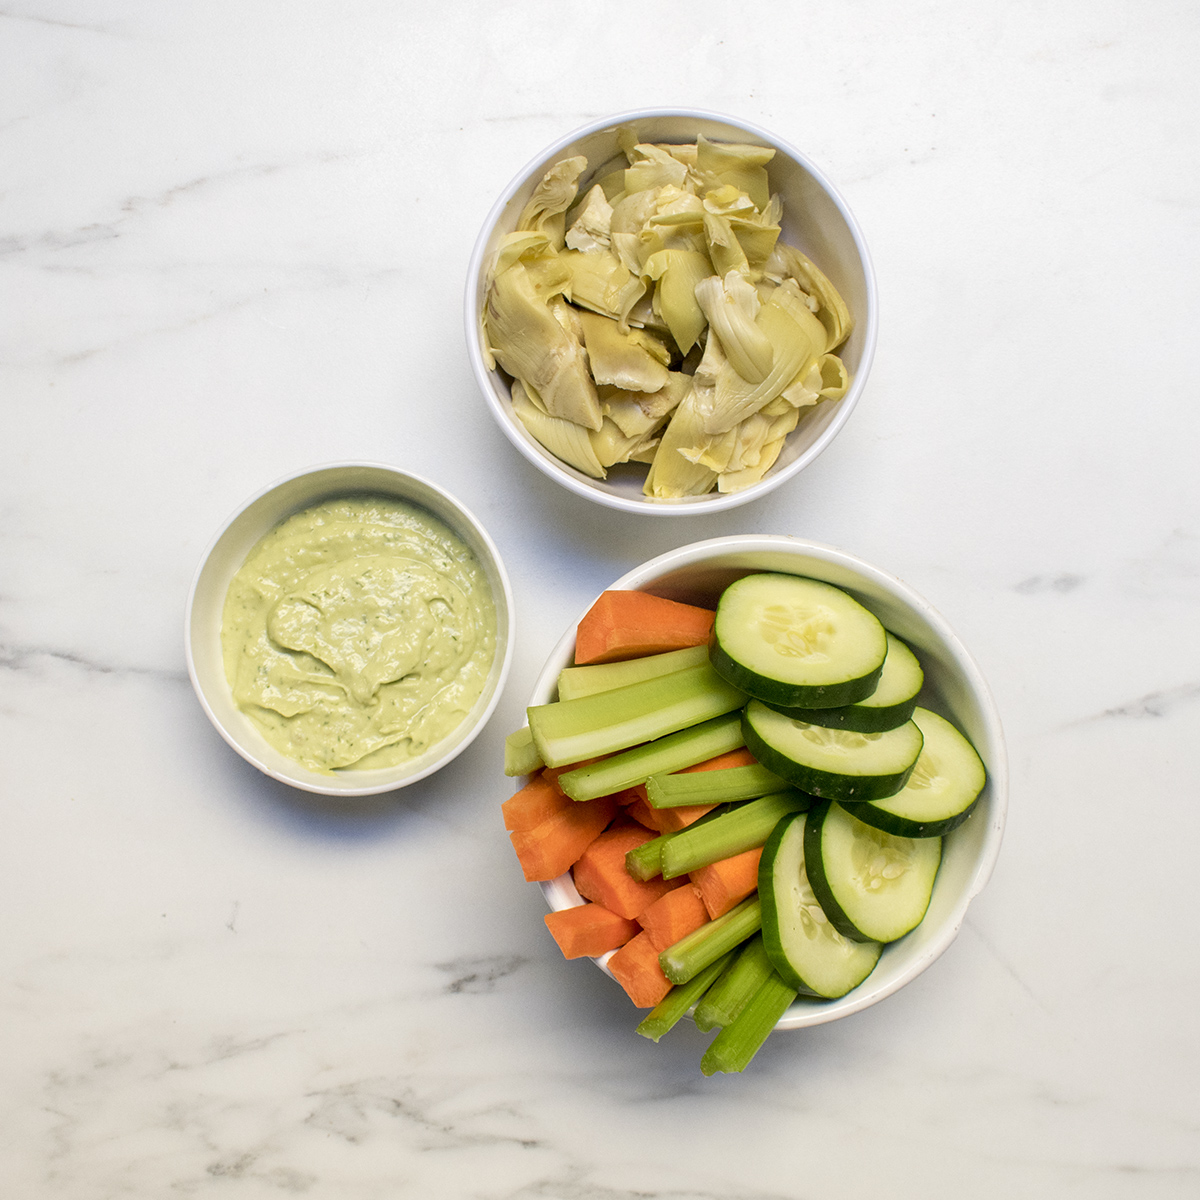 Lemon Dill Avocado Sauce